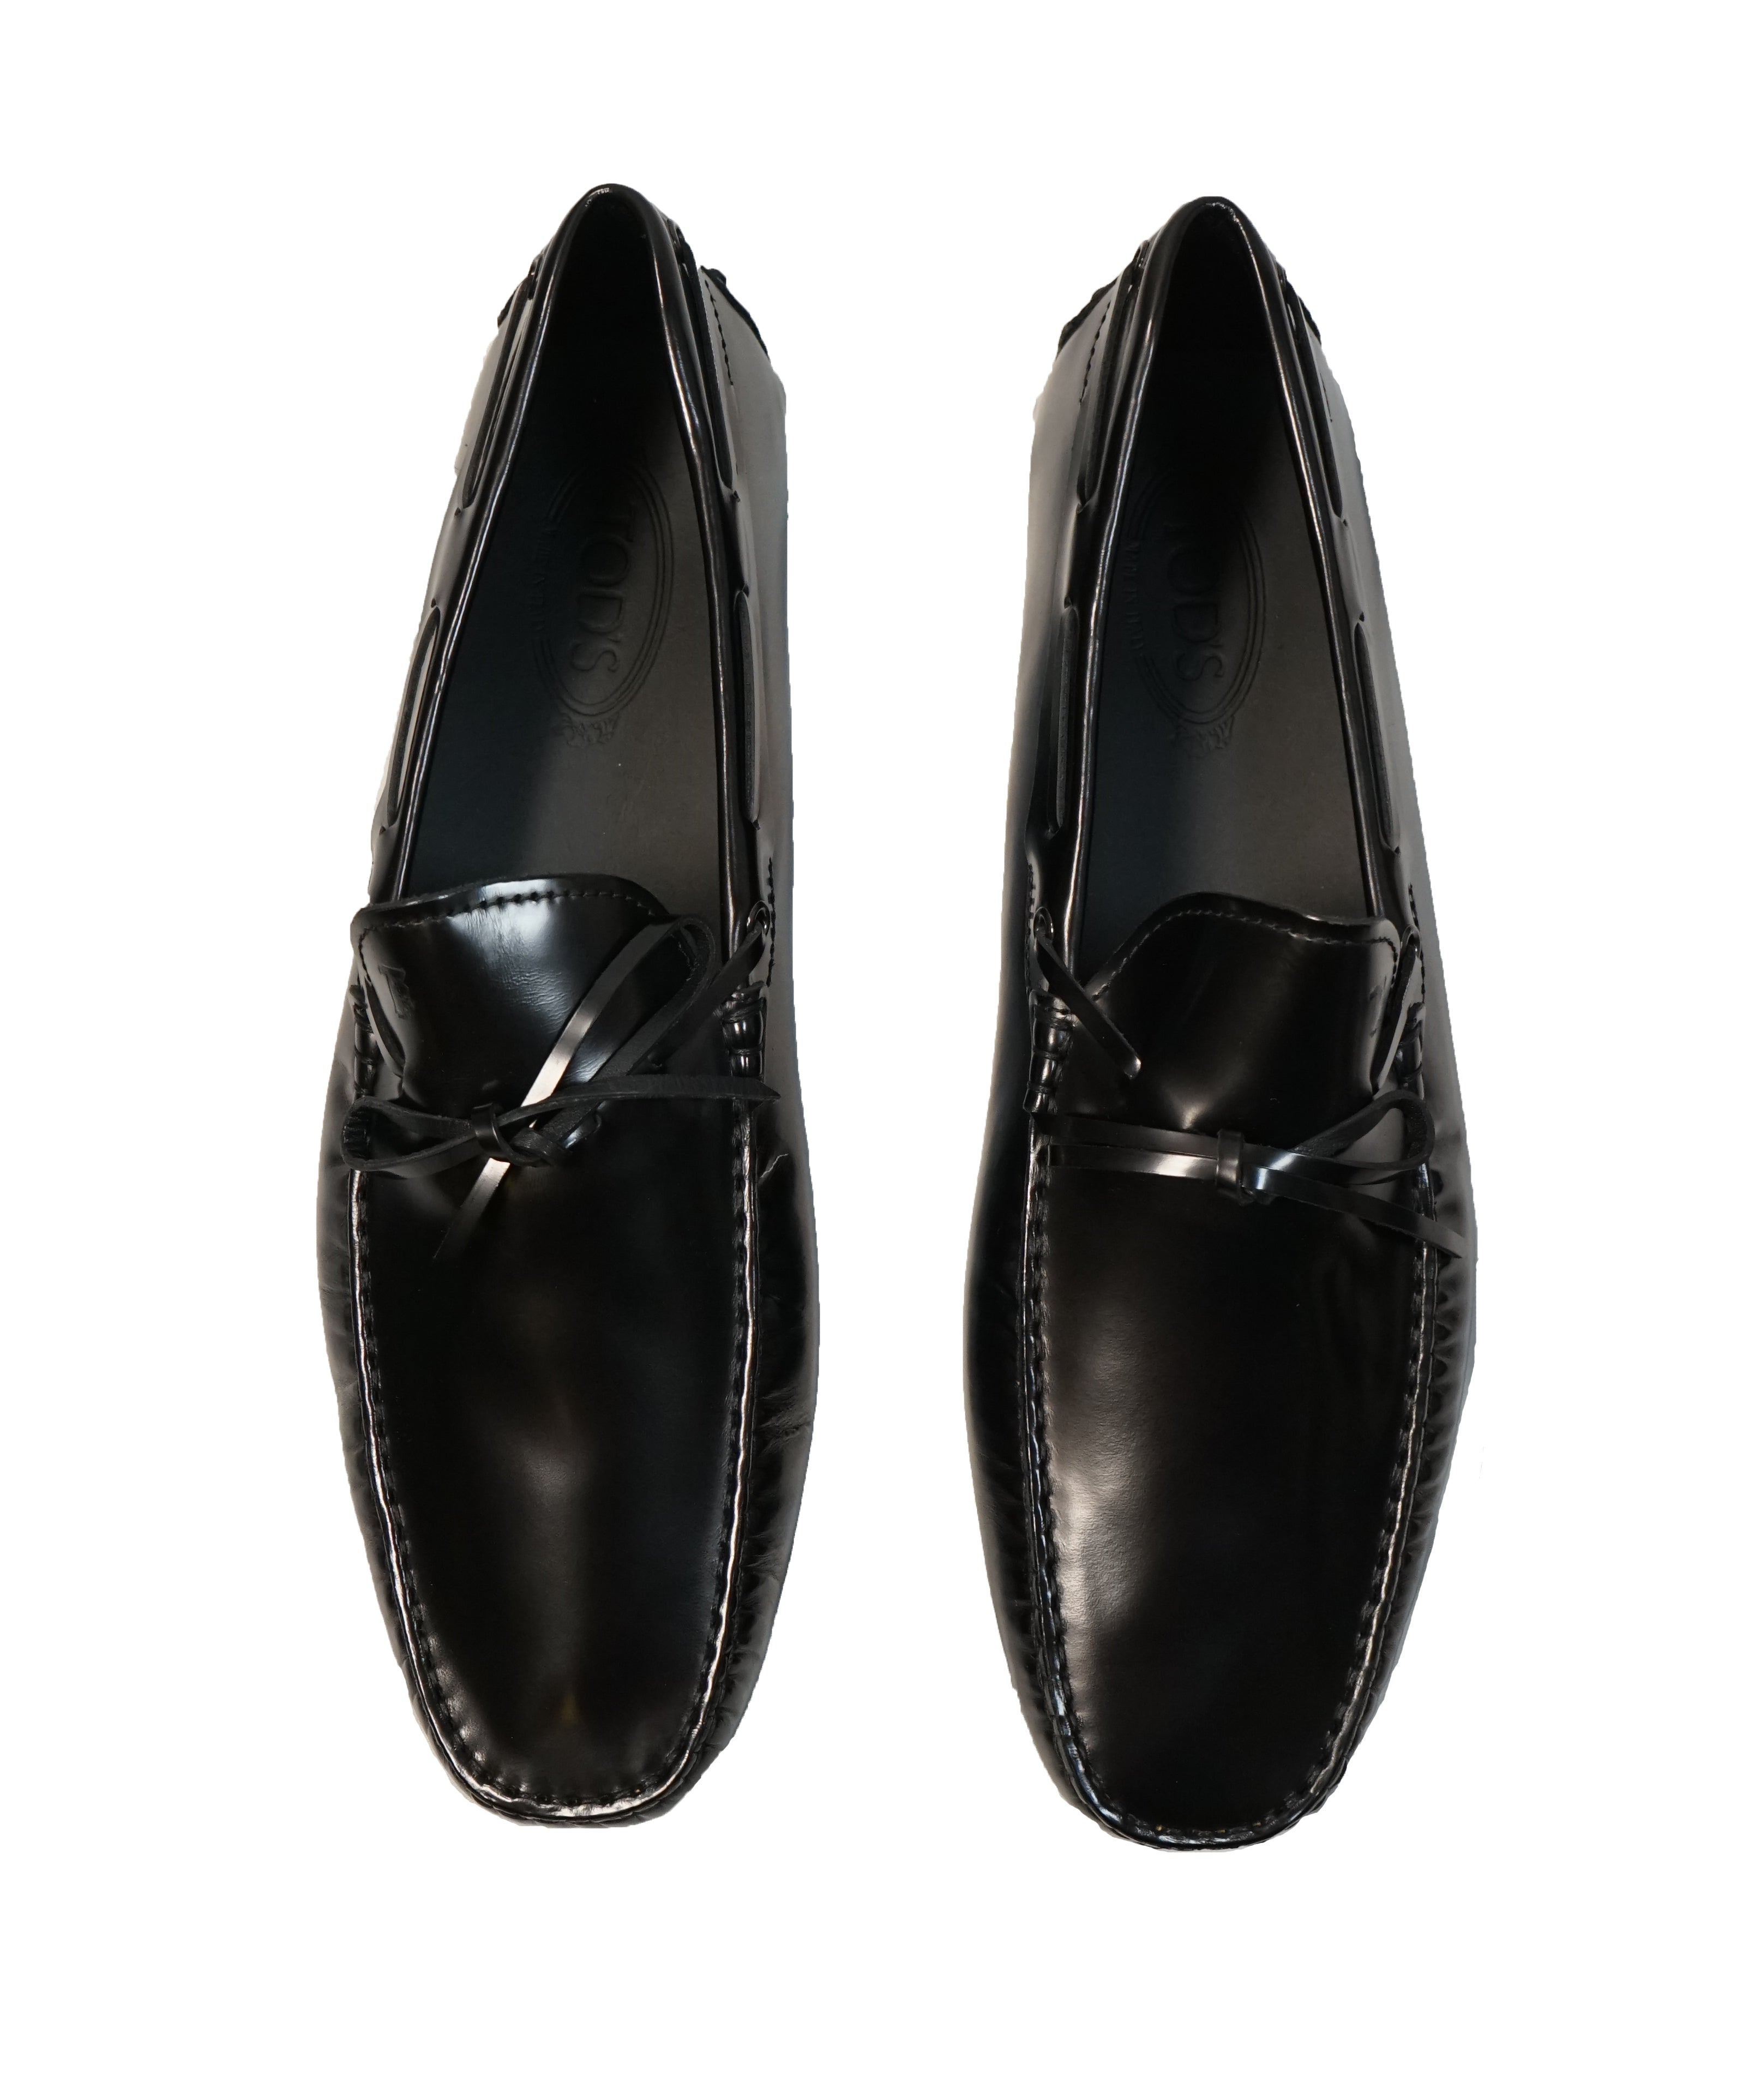 TOD'S - Gommini Laccetto Black On Black Driving Loafer - 13.5